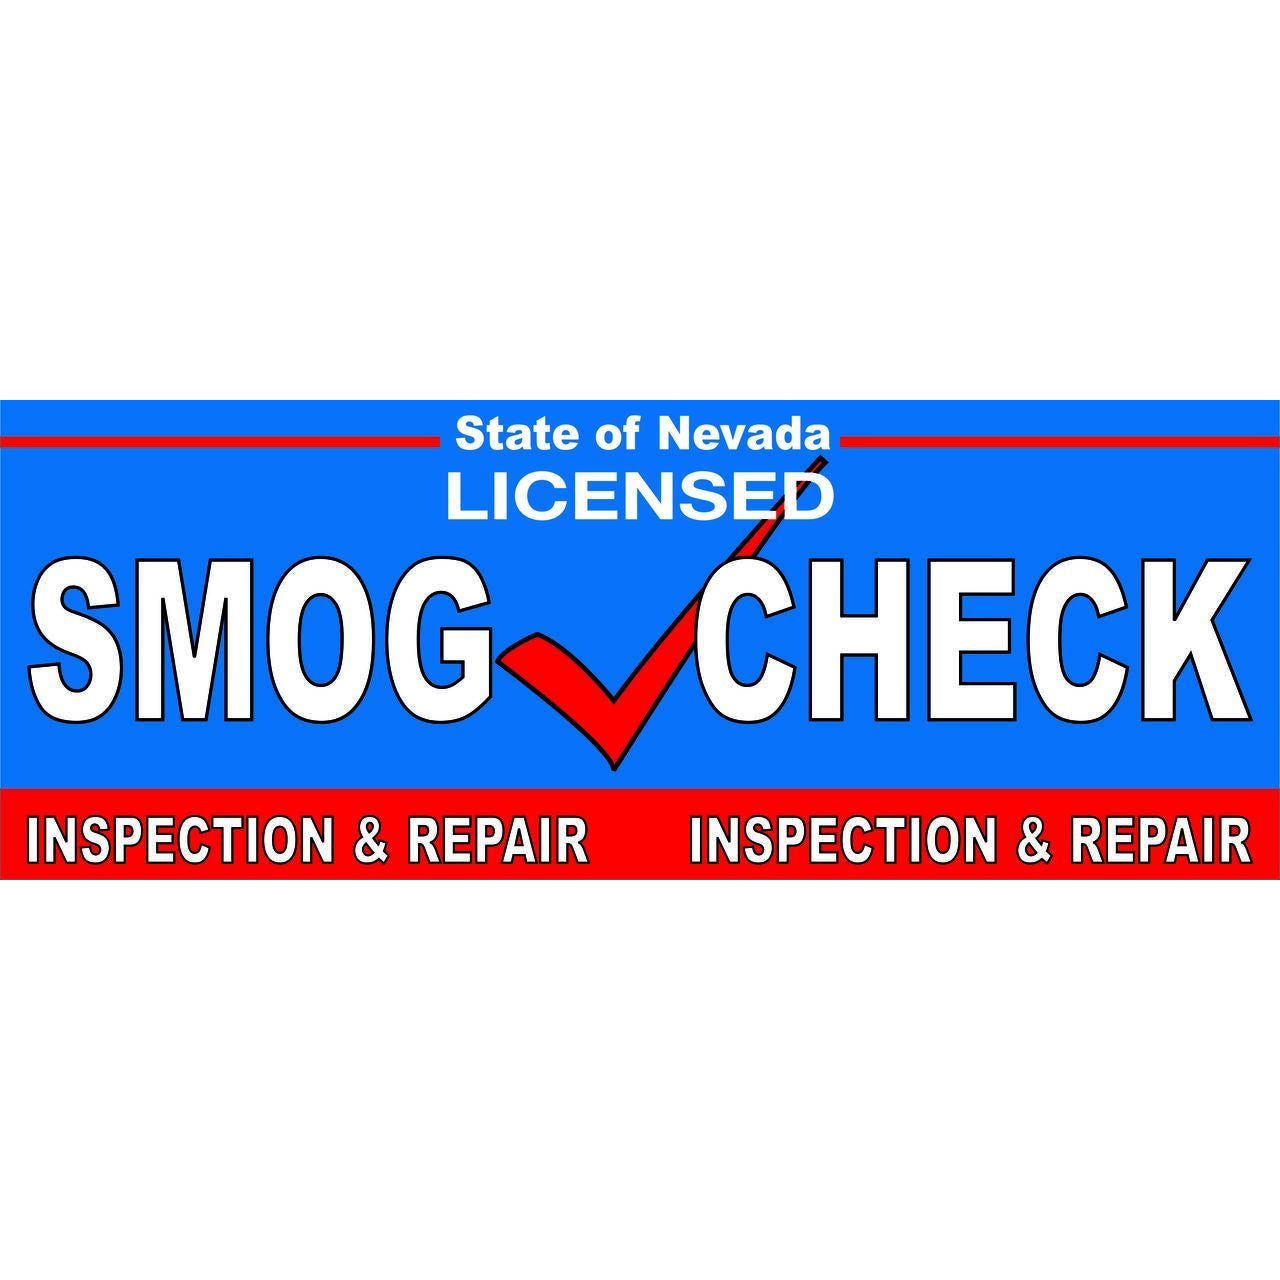 NEVADA SMOG CHECK BANNER INSPECTION & REPAIR NVB2